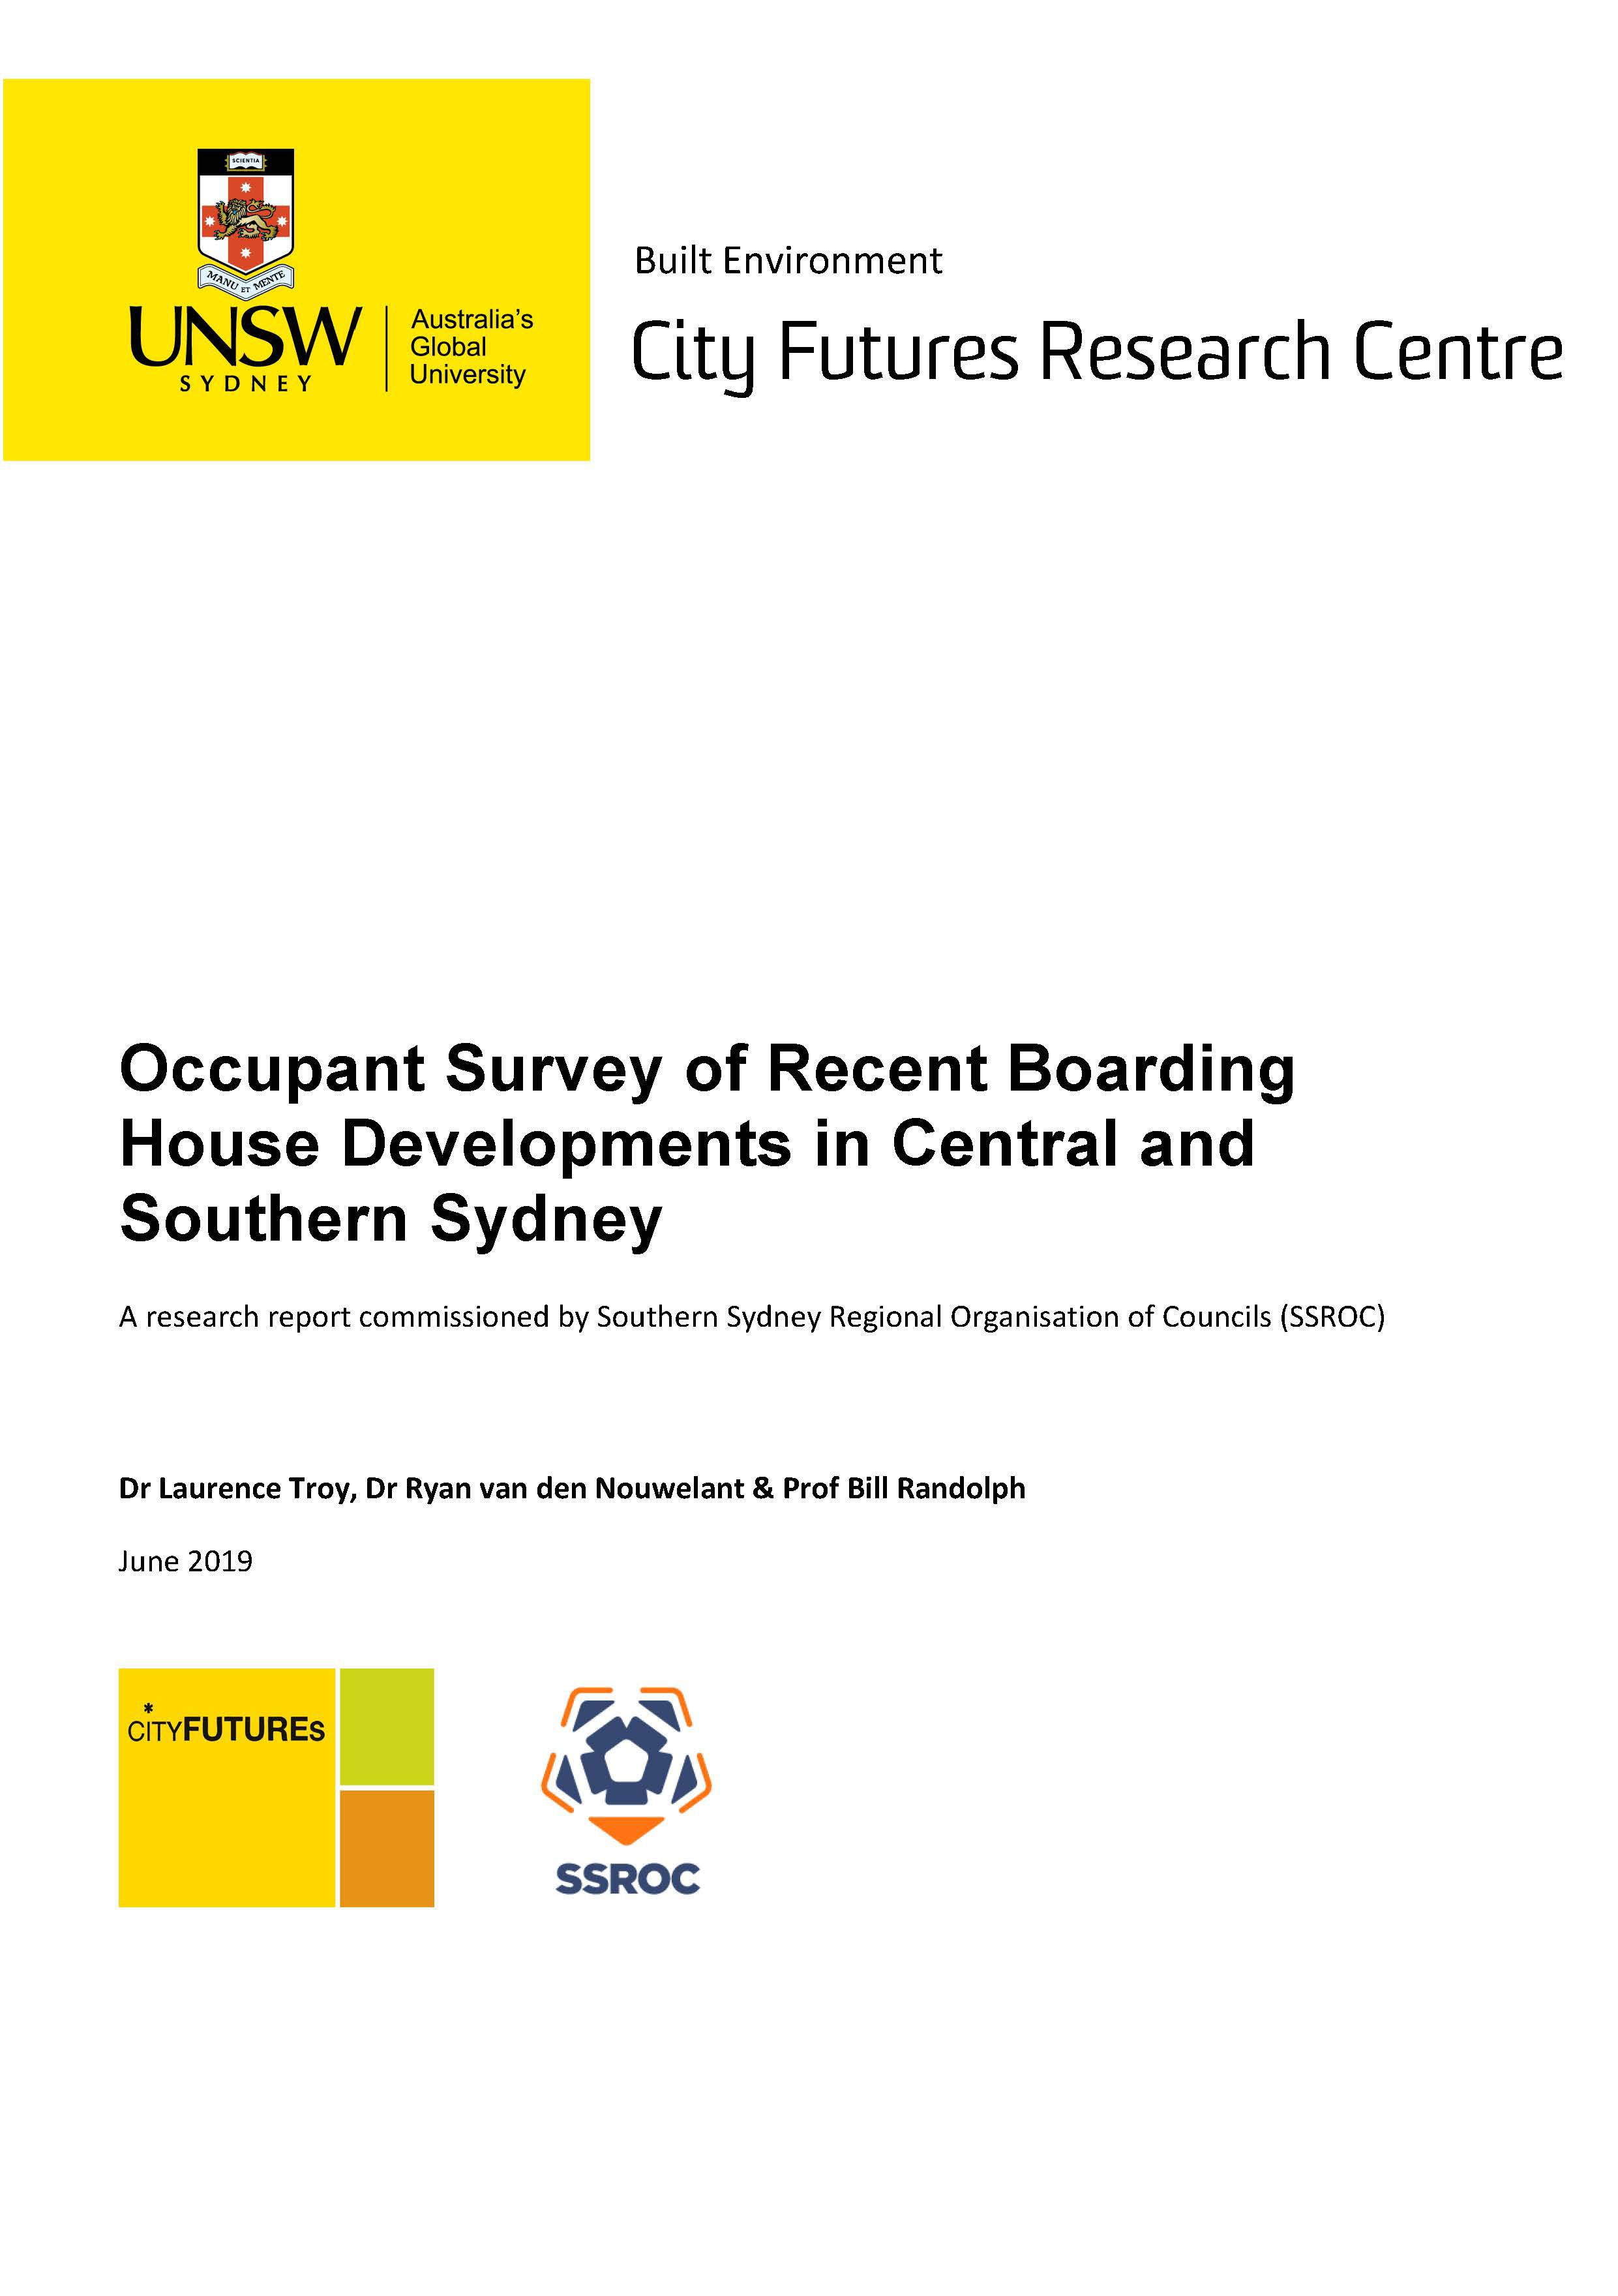 Boarding House Survey SSROC_FINAL_cover.jpg